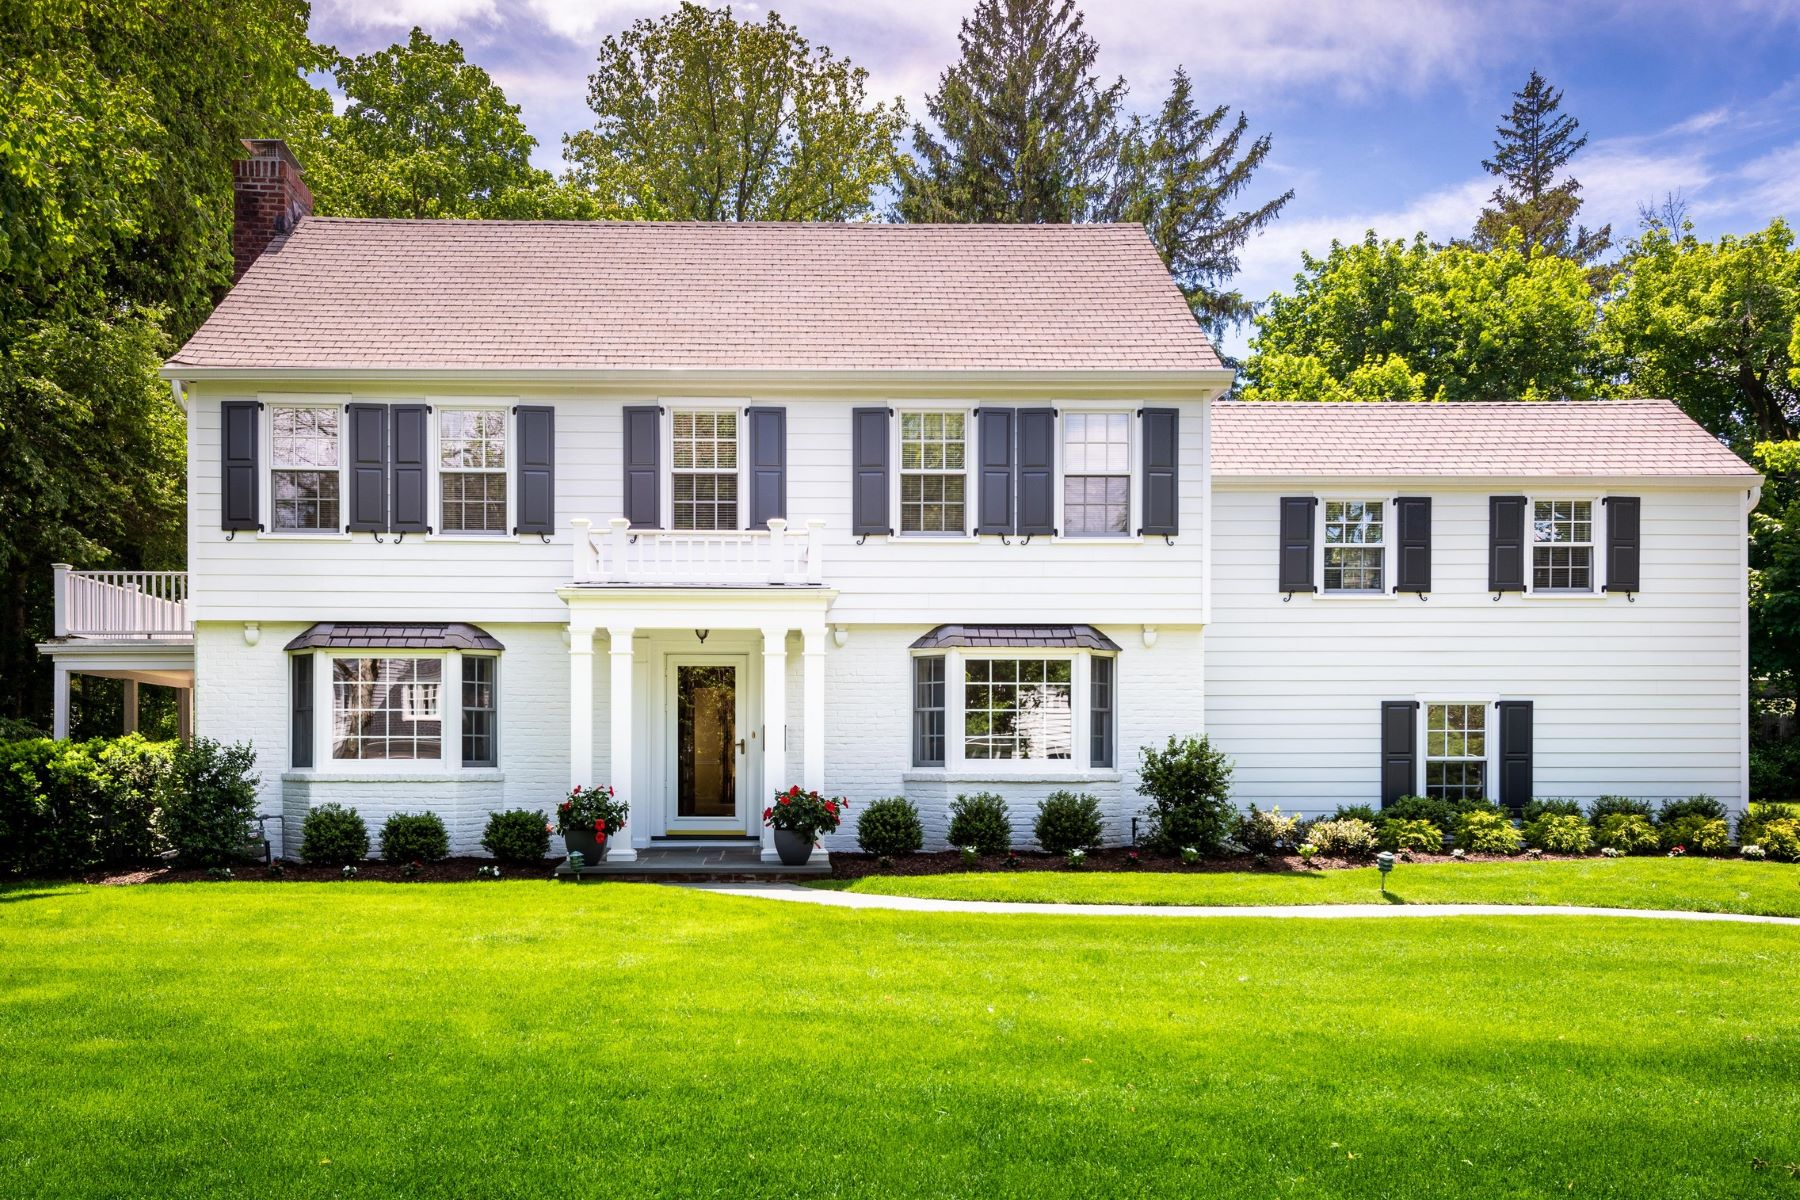 Single Family Homes for Active at Manhasset 36 Valley Road Manhasset, New York 11030 United States